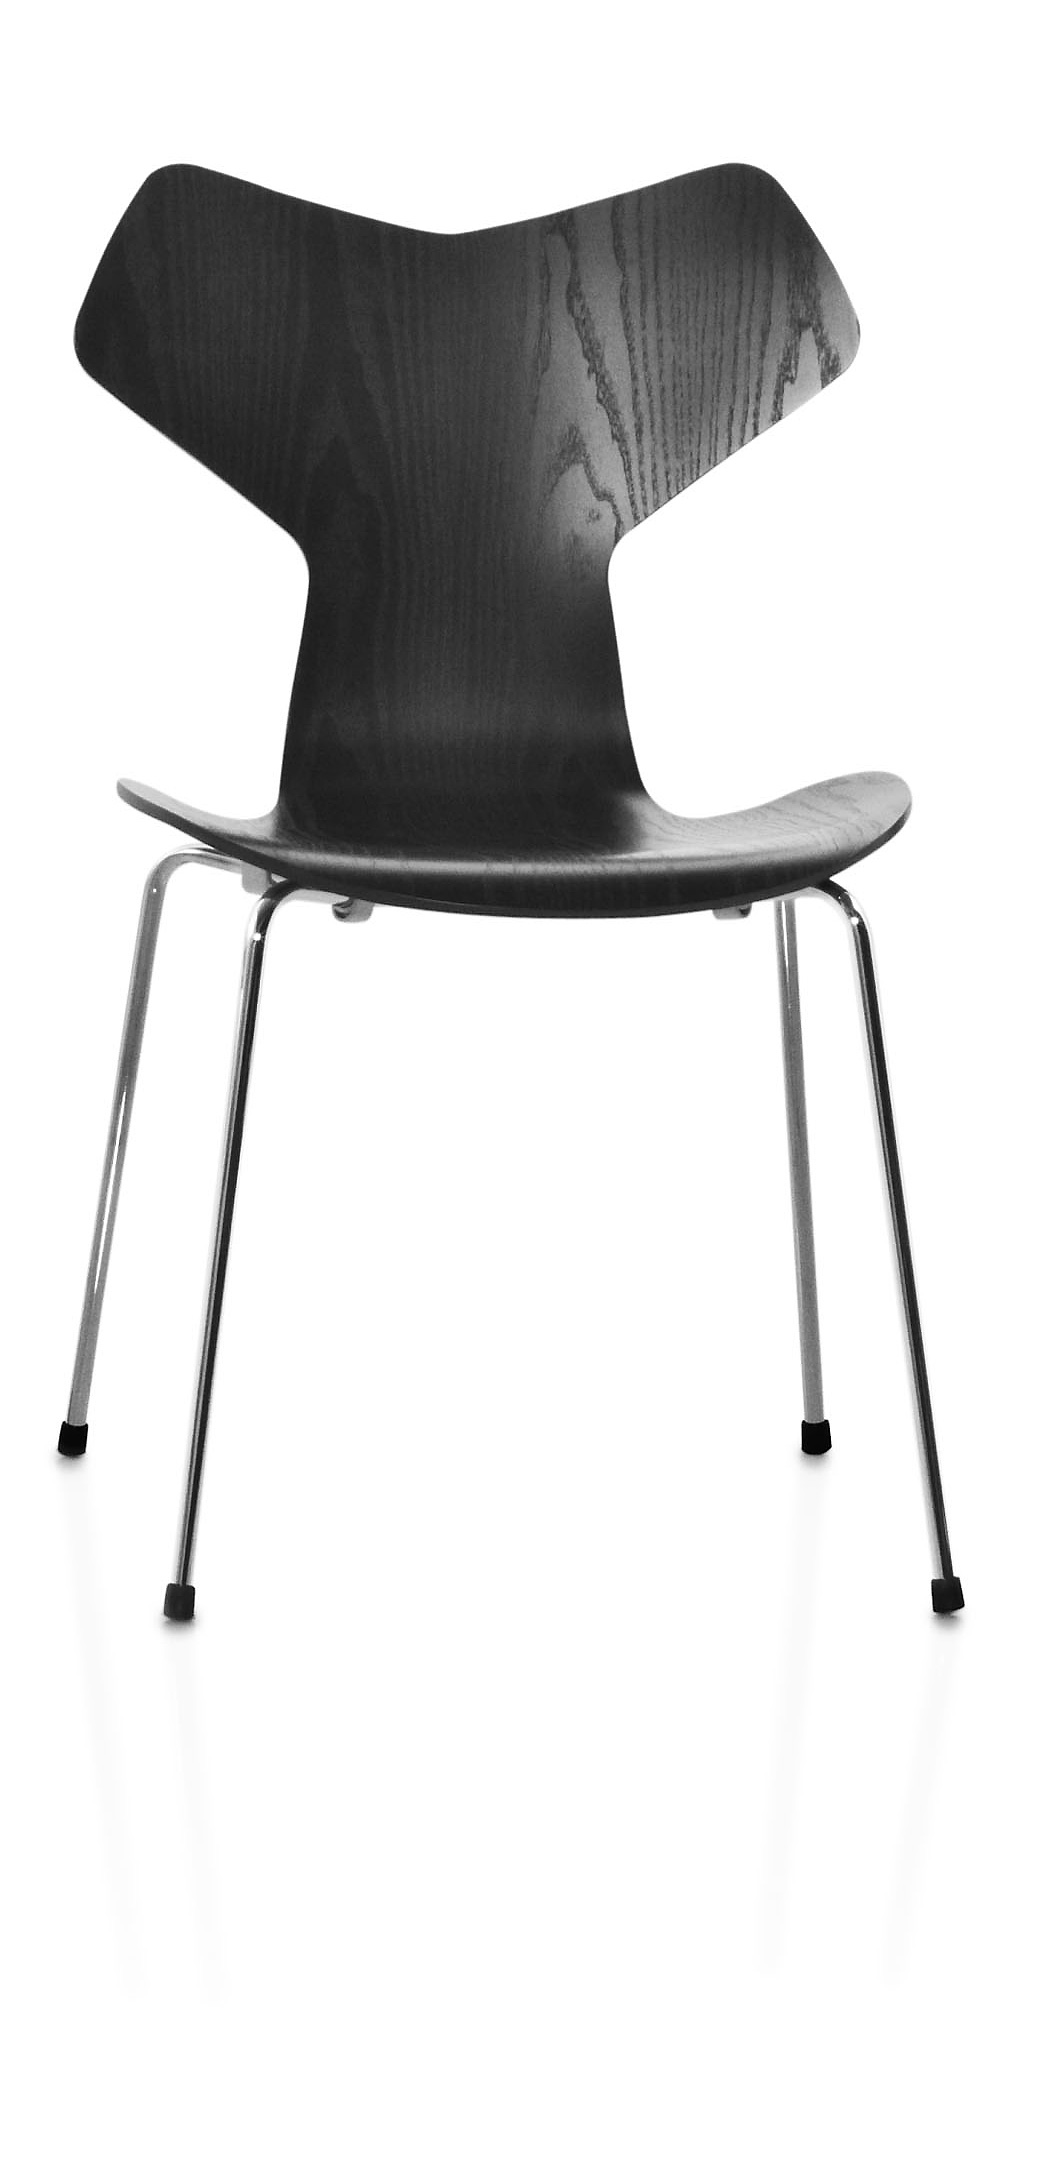 arne jacobsen grand prix chair. Black Bedroom Furniture Sets. Home Design Ideas